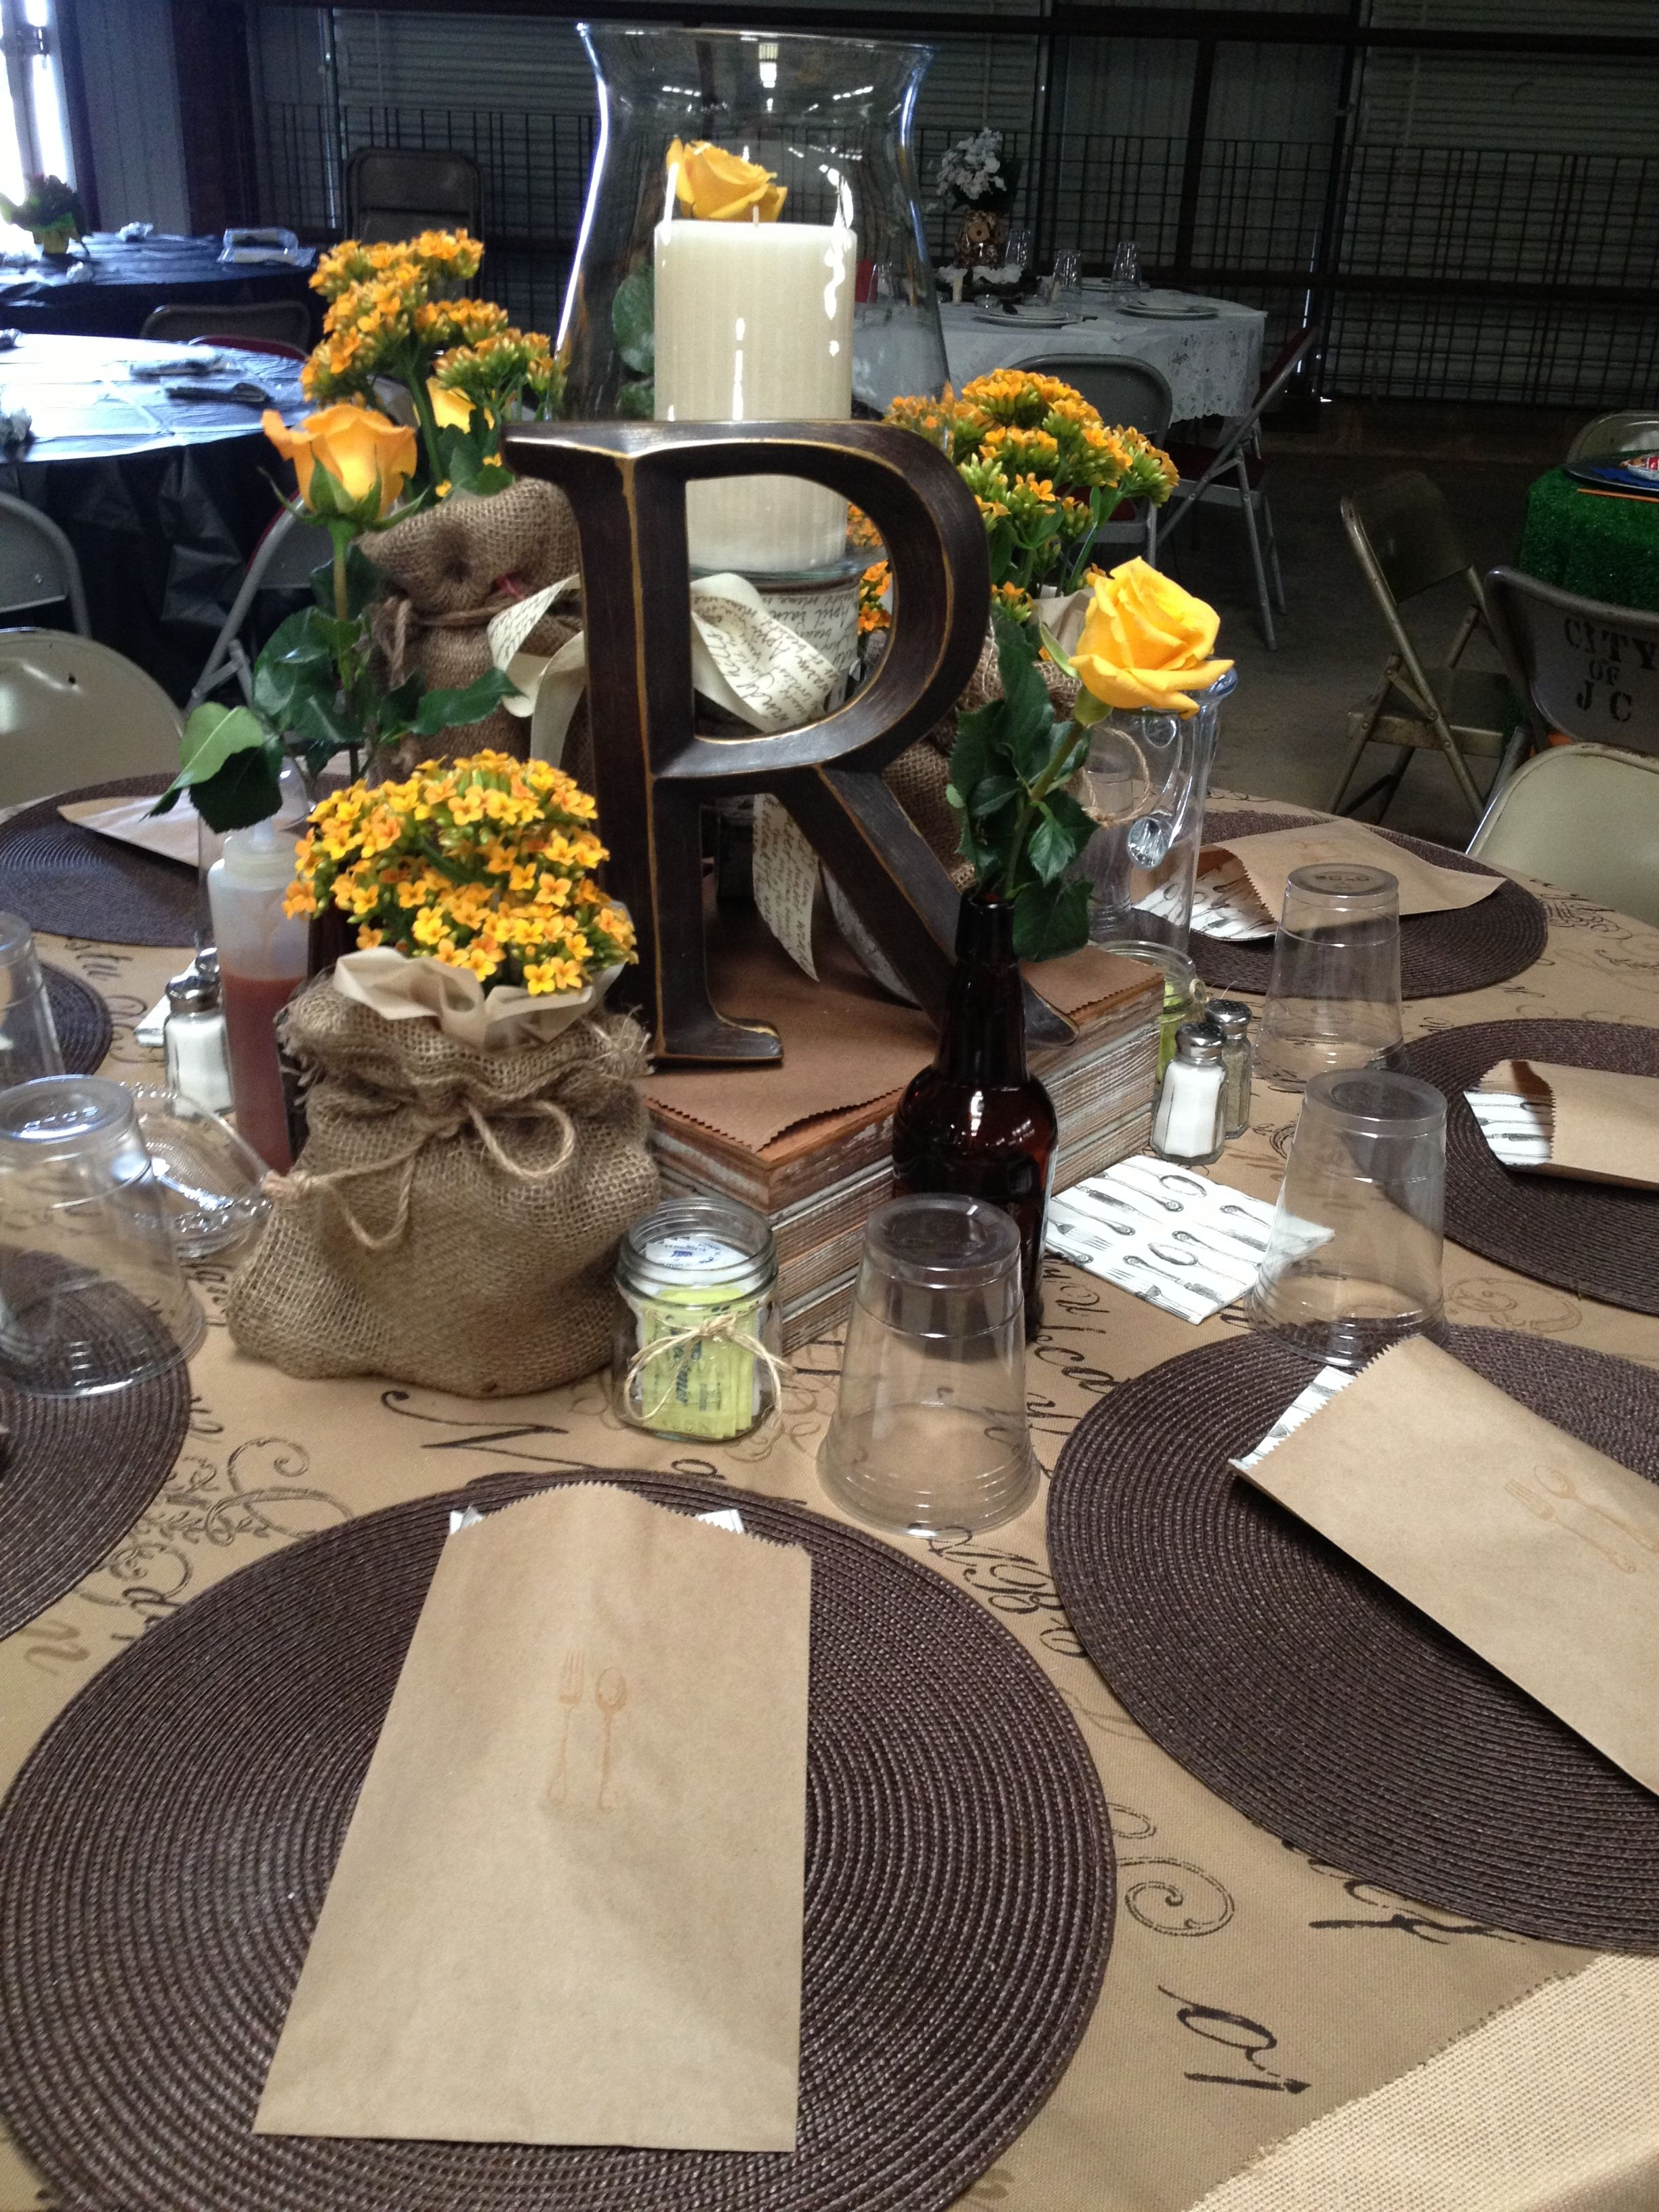 Bride Groom Table Decoration Rustic Table Decor Maybe For Bride And Groom Table Wedding Ideas